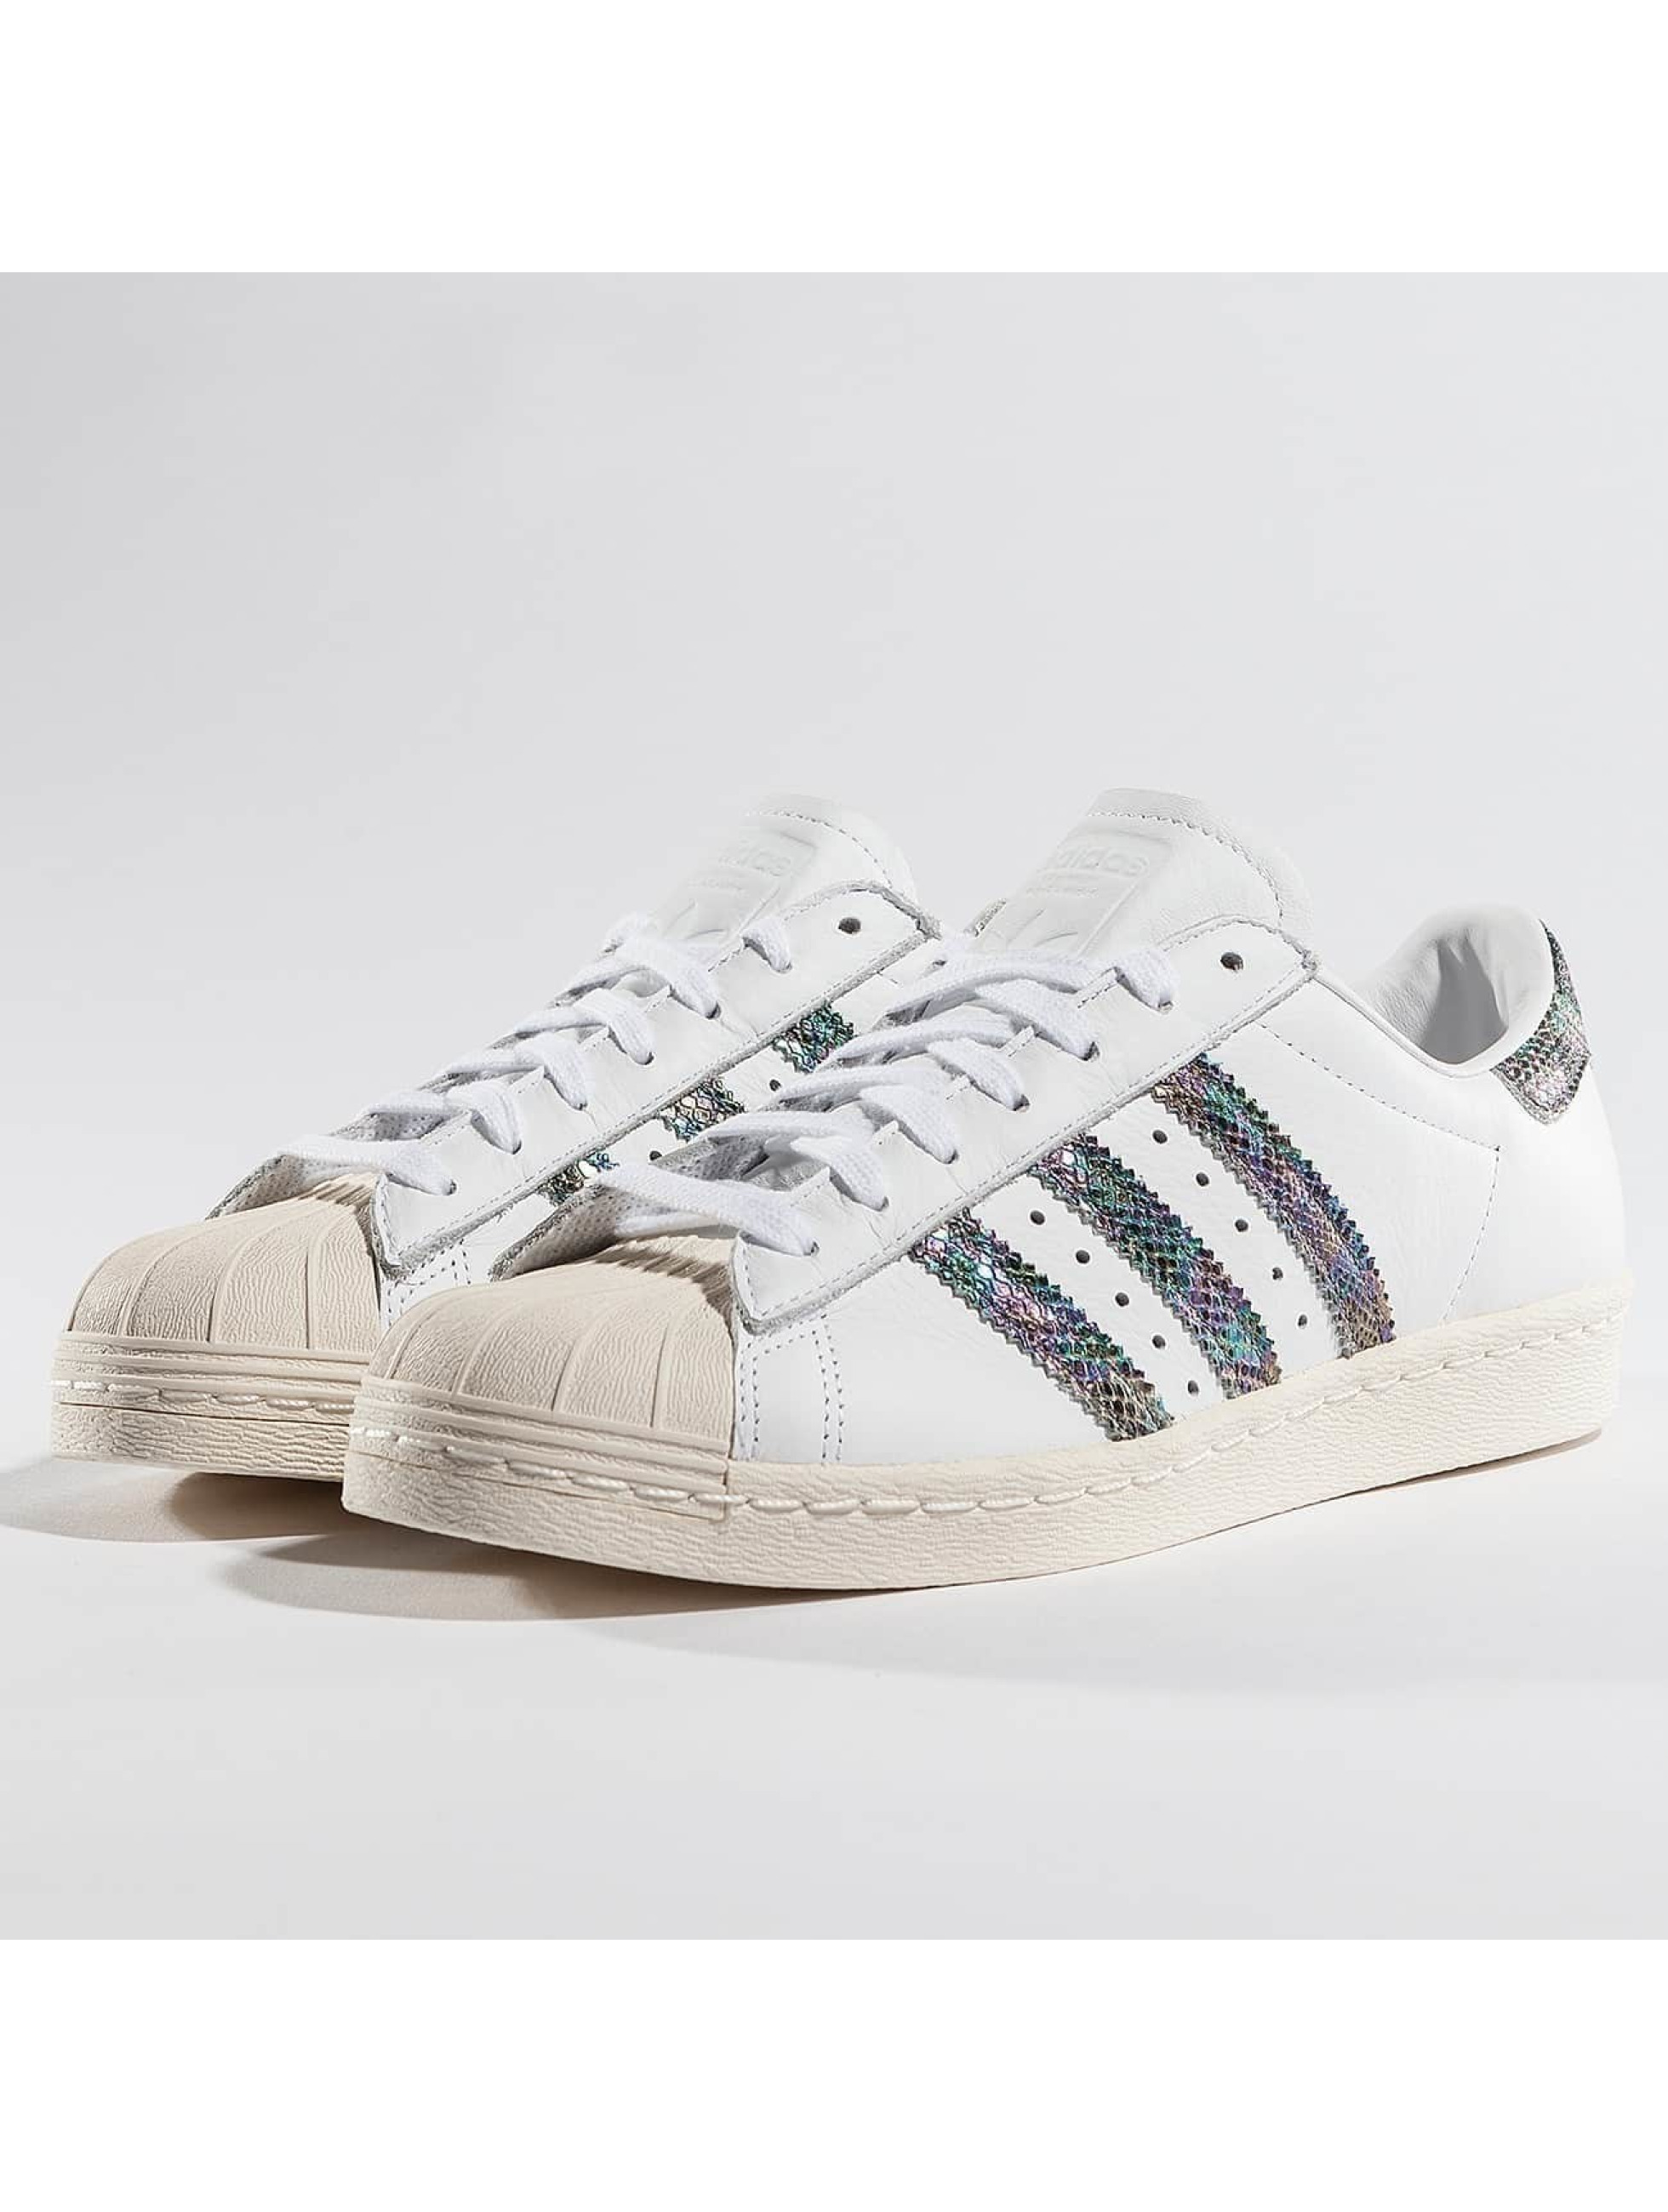 adidas Sneakers Superstar 80s white